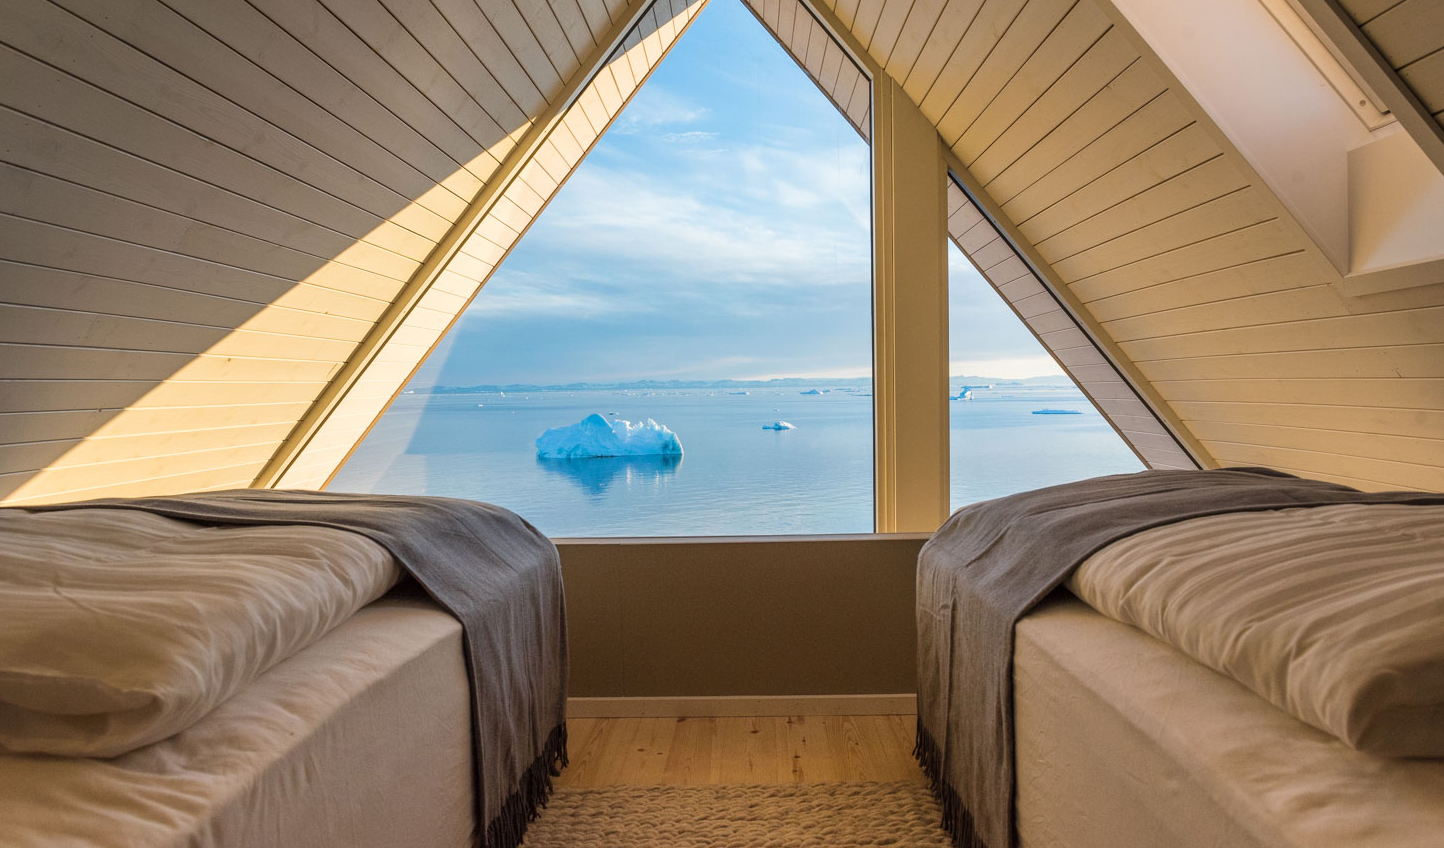 The incredible bedroom view at Ilimanaq Lodge